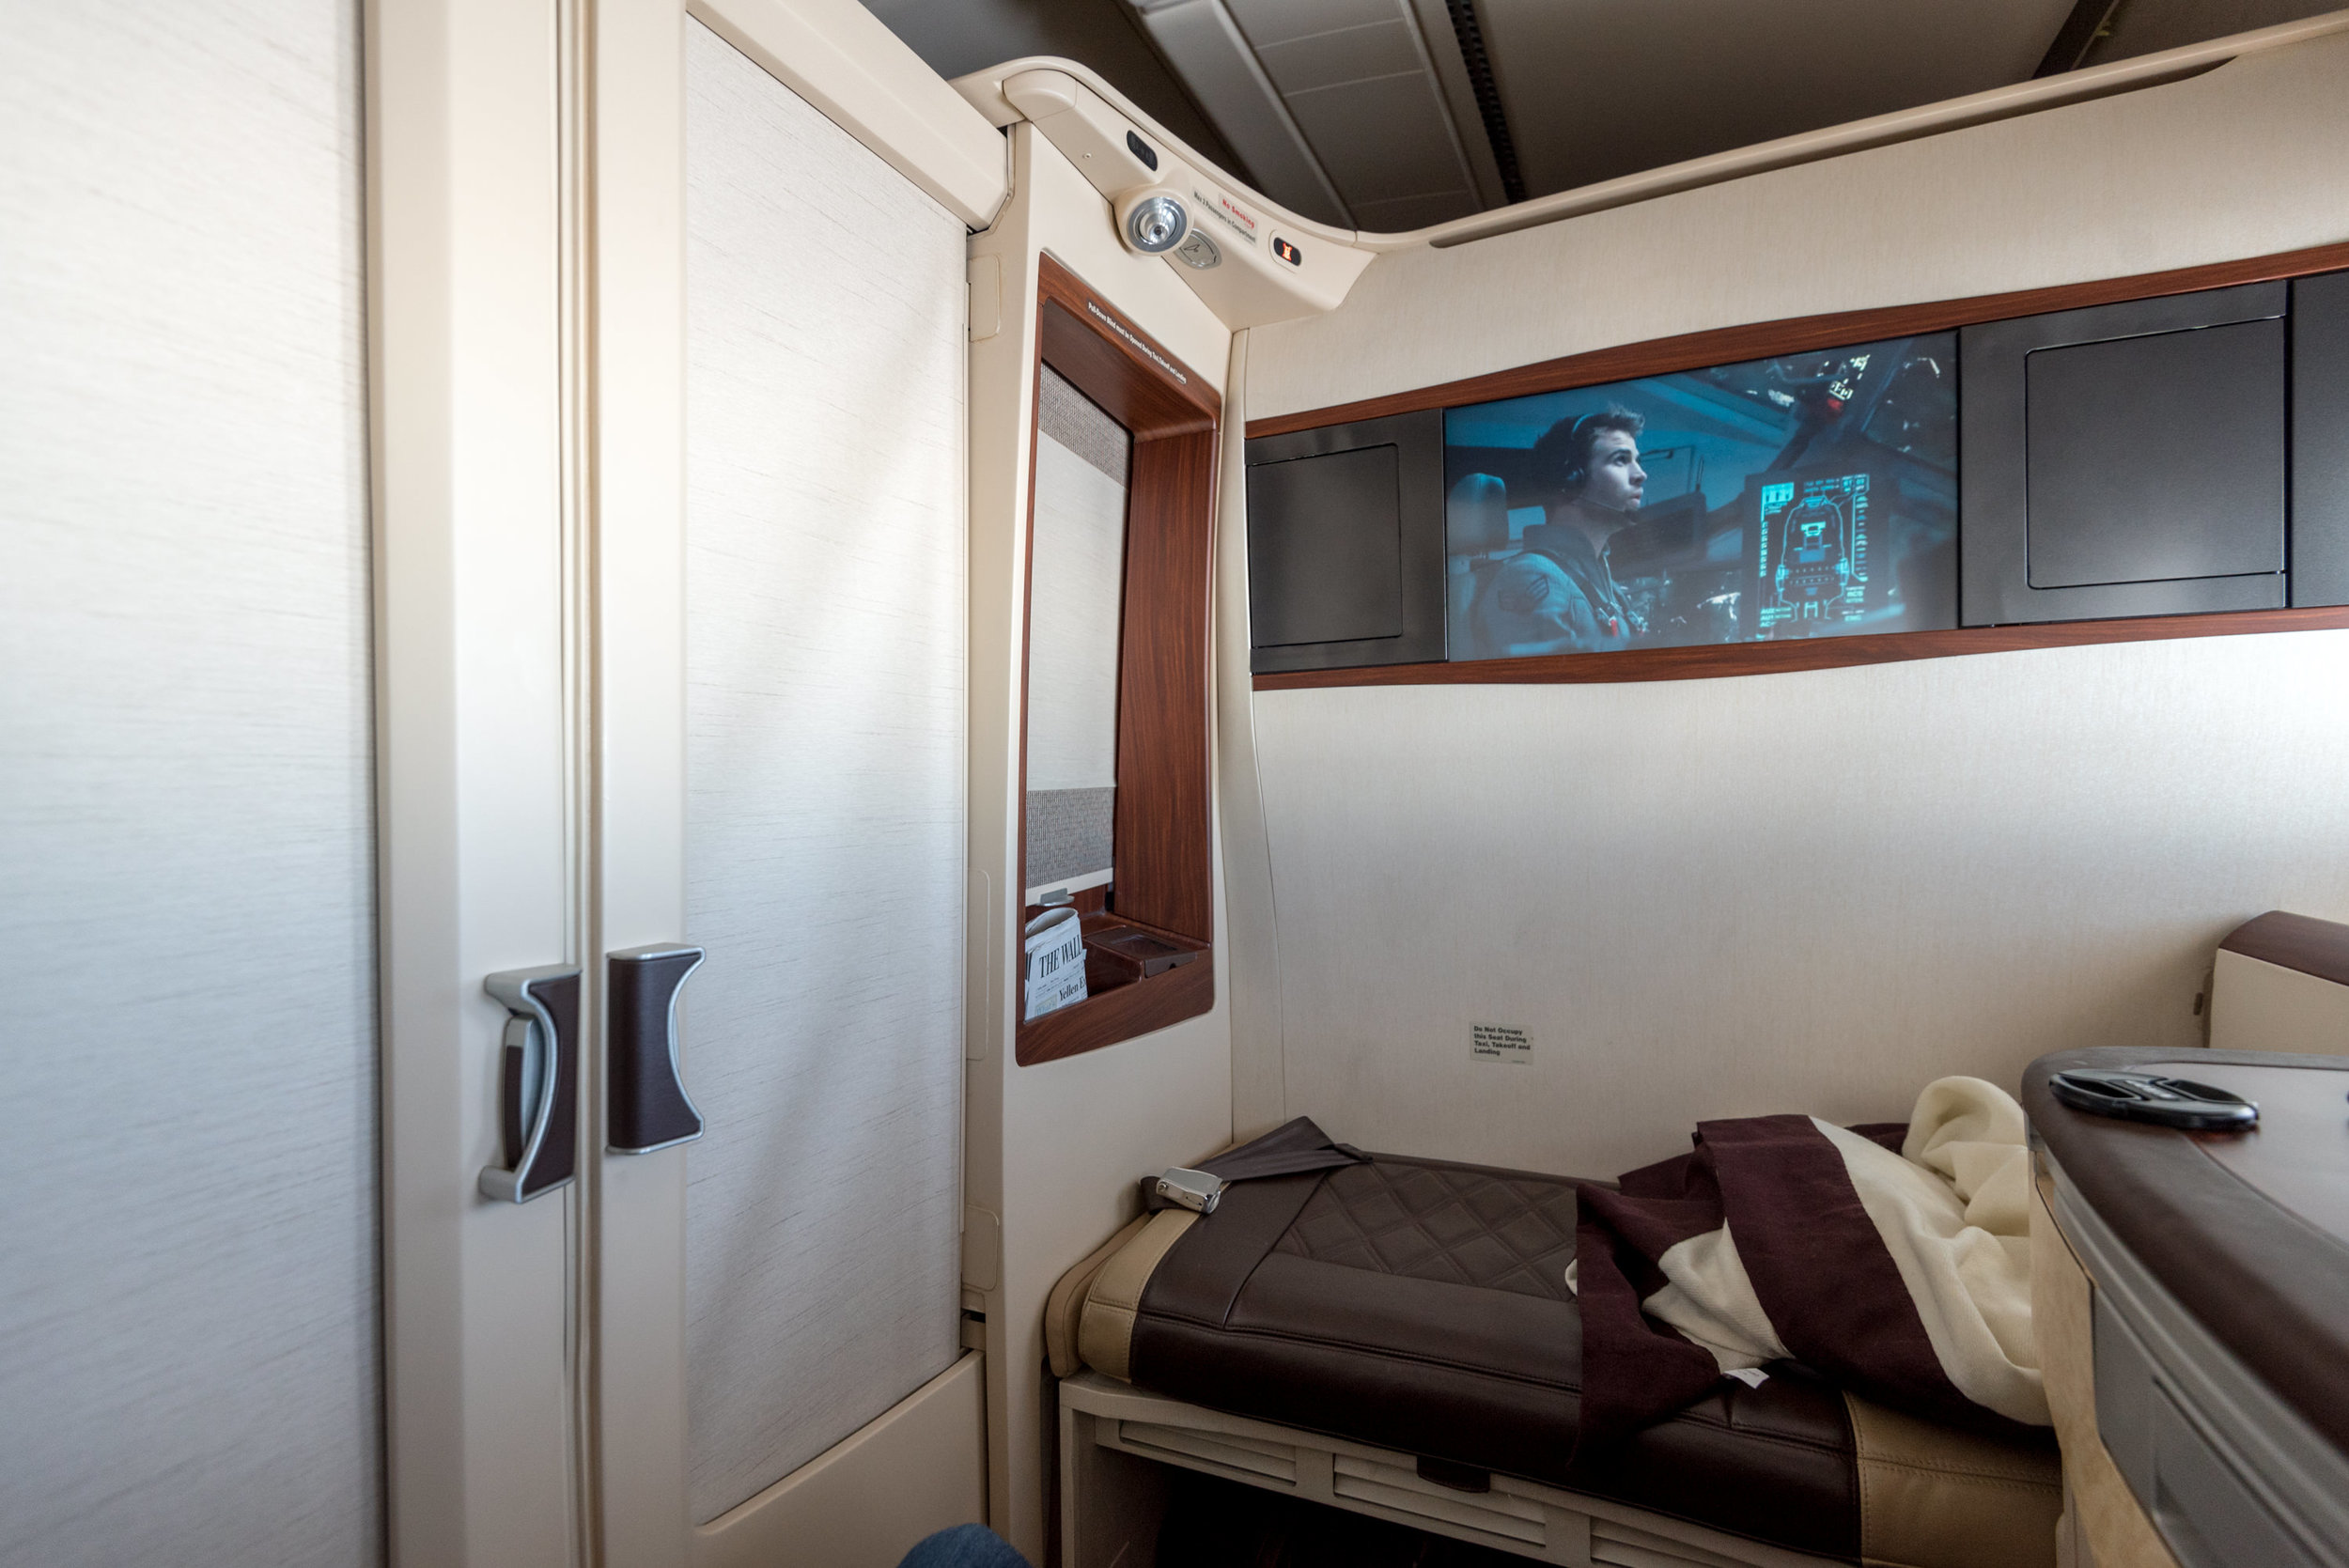 Suite 3F (Closed)  Singapore Airlines Suites A380-800 - AKL to SIN